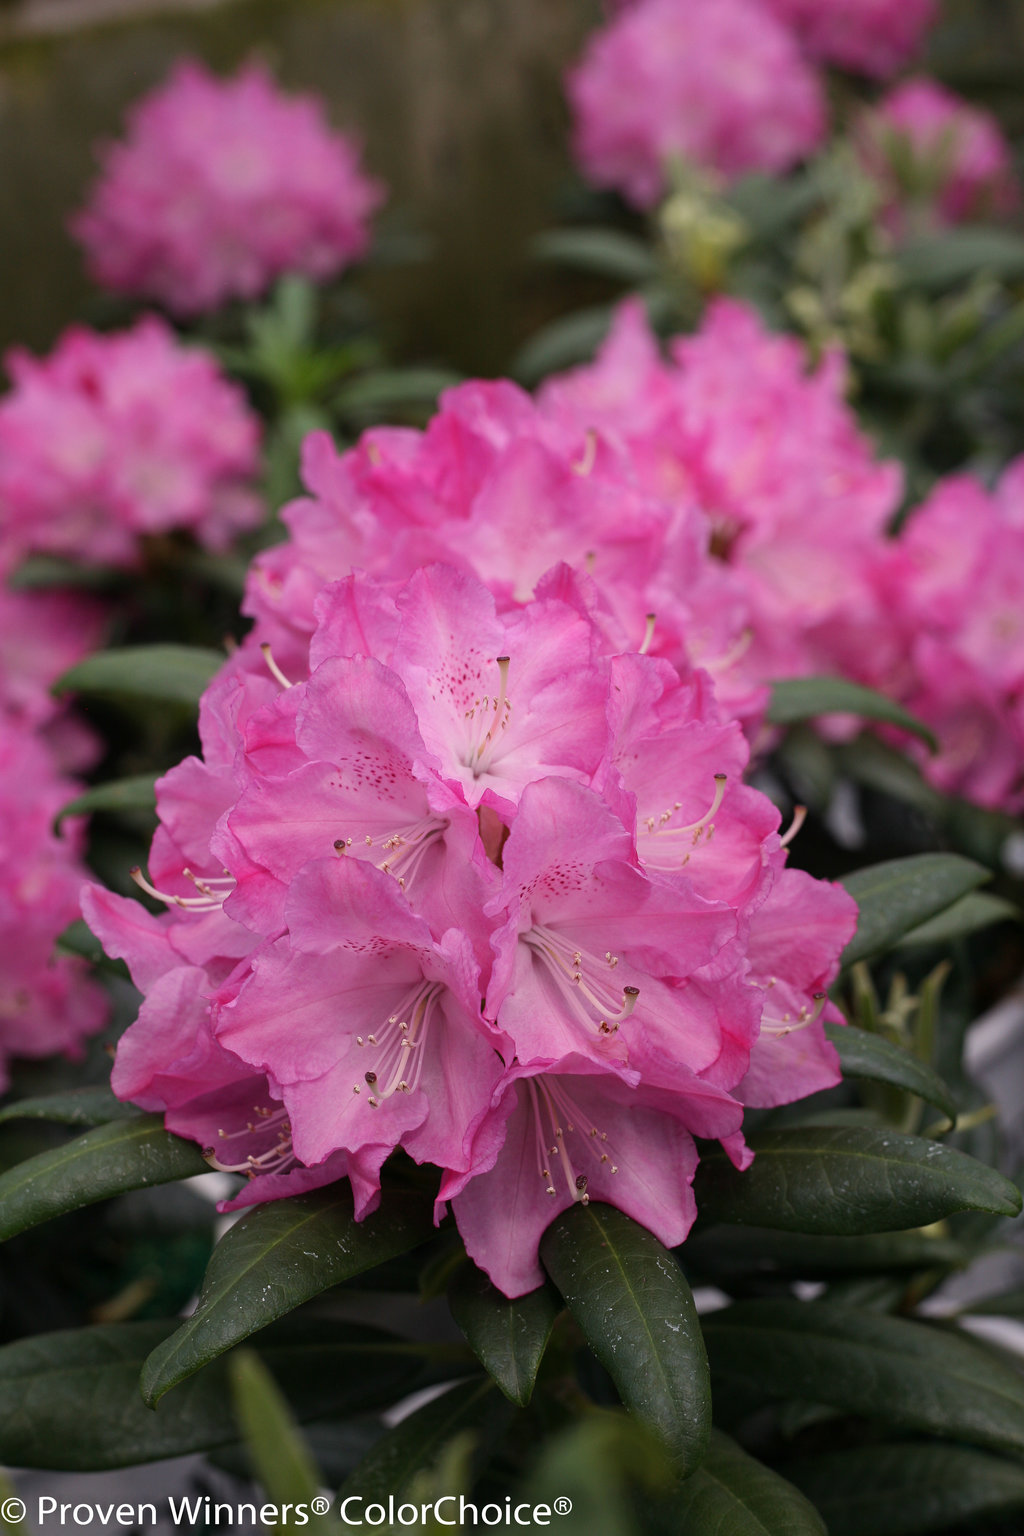 Dandy Man 174 Pink Rhododendron X Proven Winners